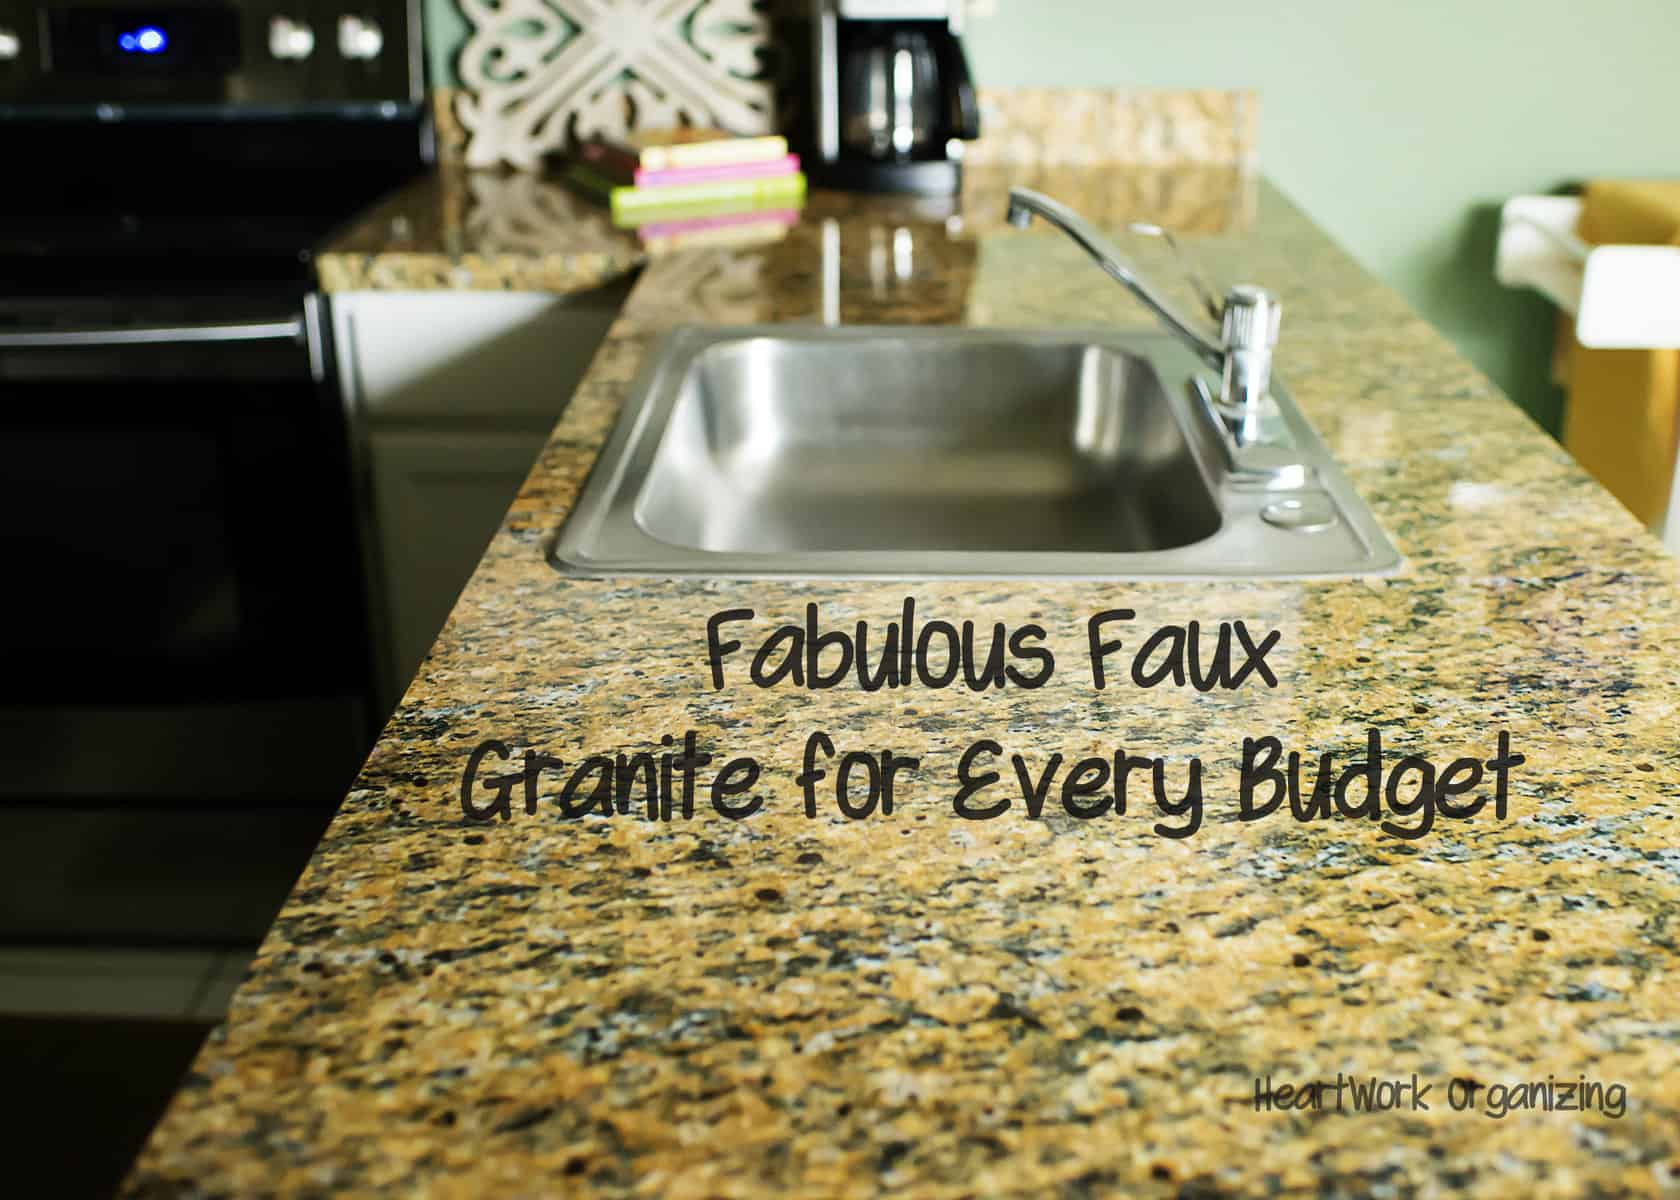 Faux Granite Diy Installation Videos Heartwork Organizing Tips For Organizing Your Home